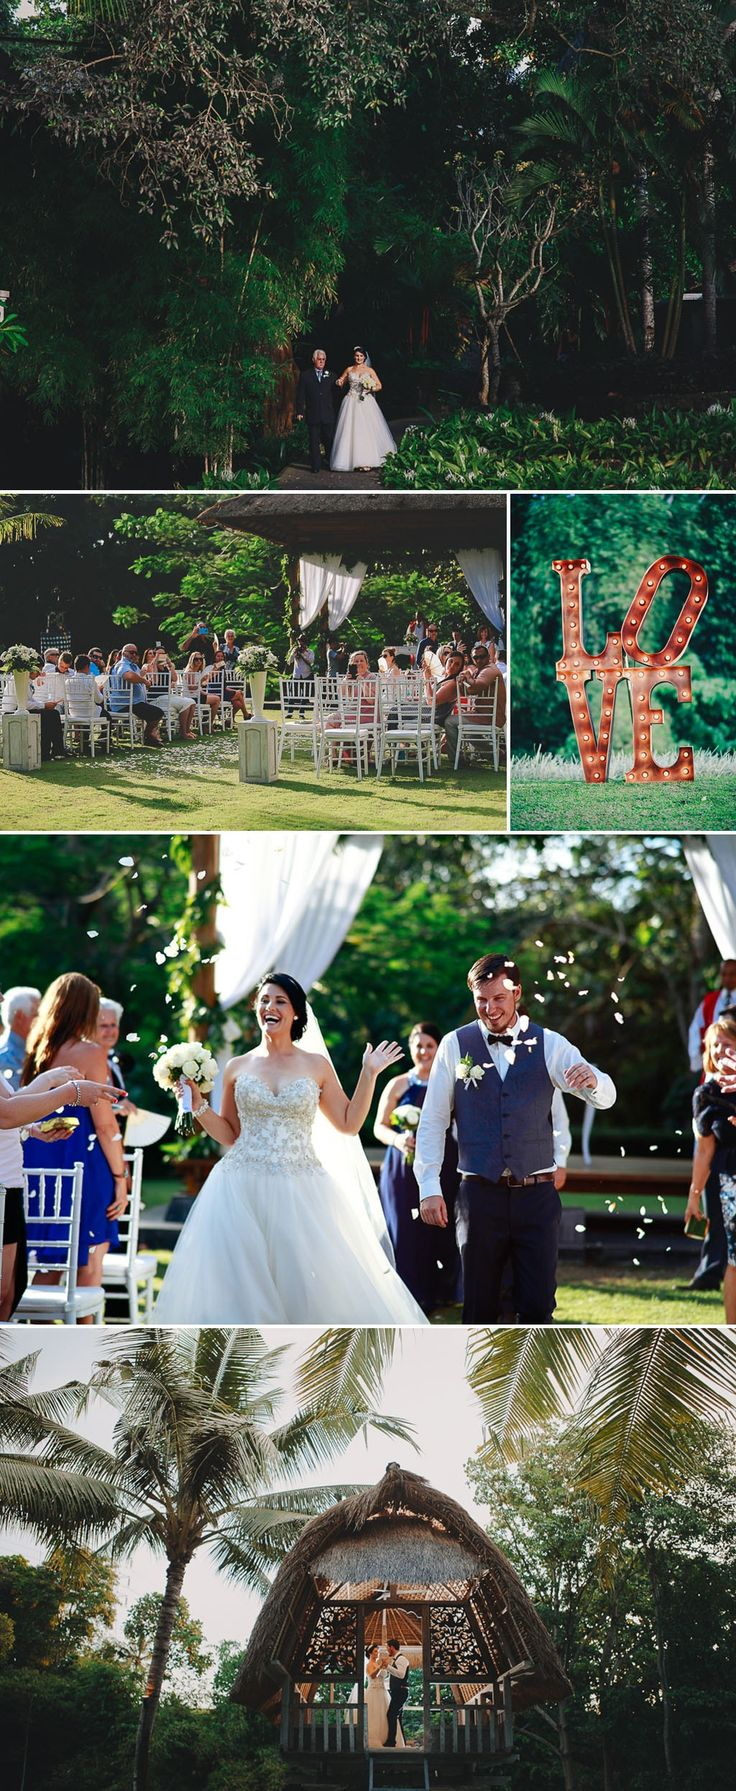 wedding reception photo booth singapore%0A Bali Wedding Venues     Villas With Amazing Views Perfect For Your  Destination Wedding